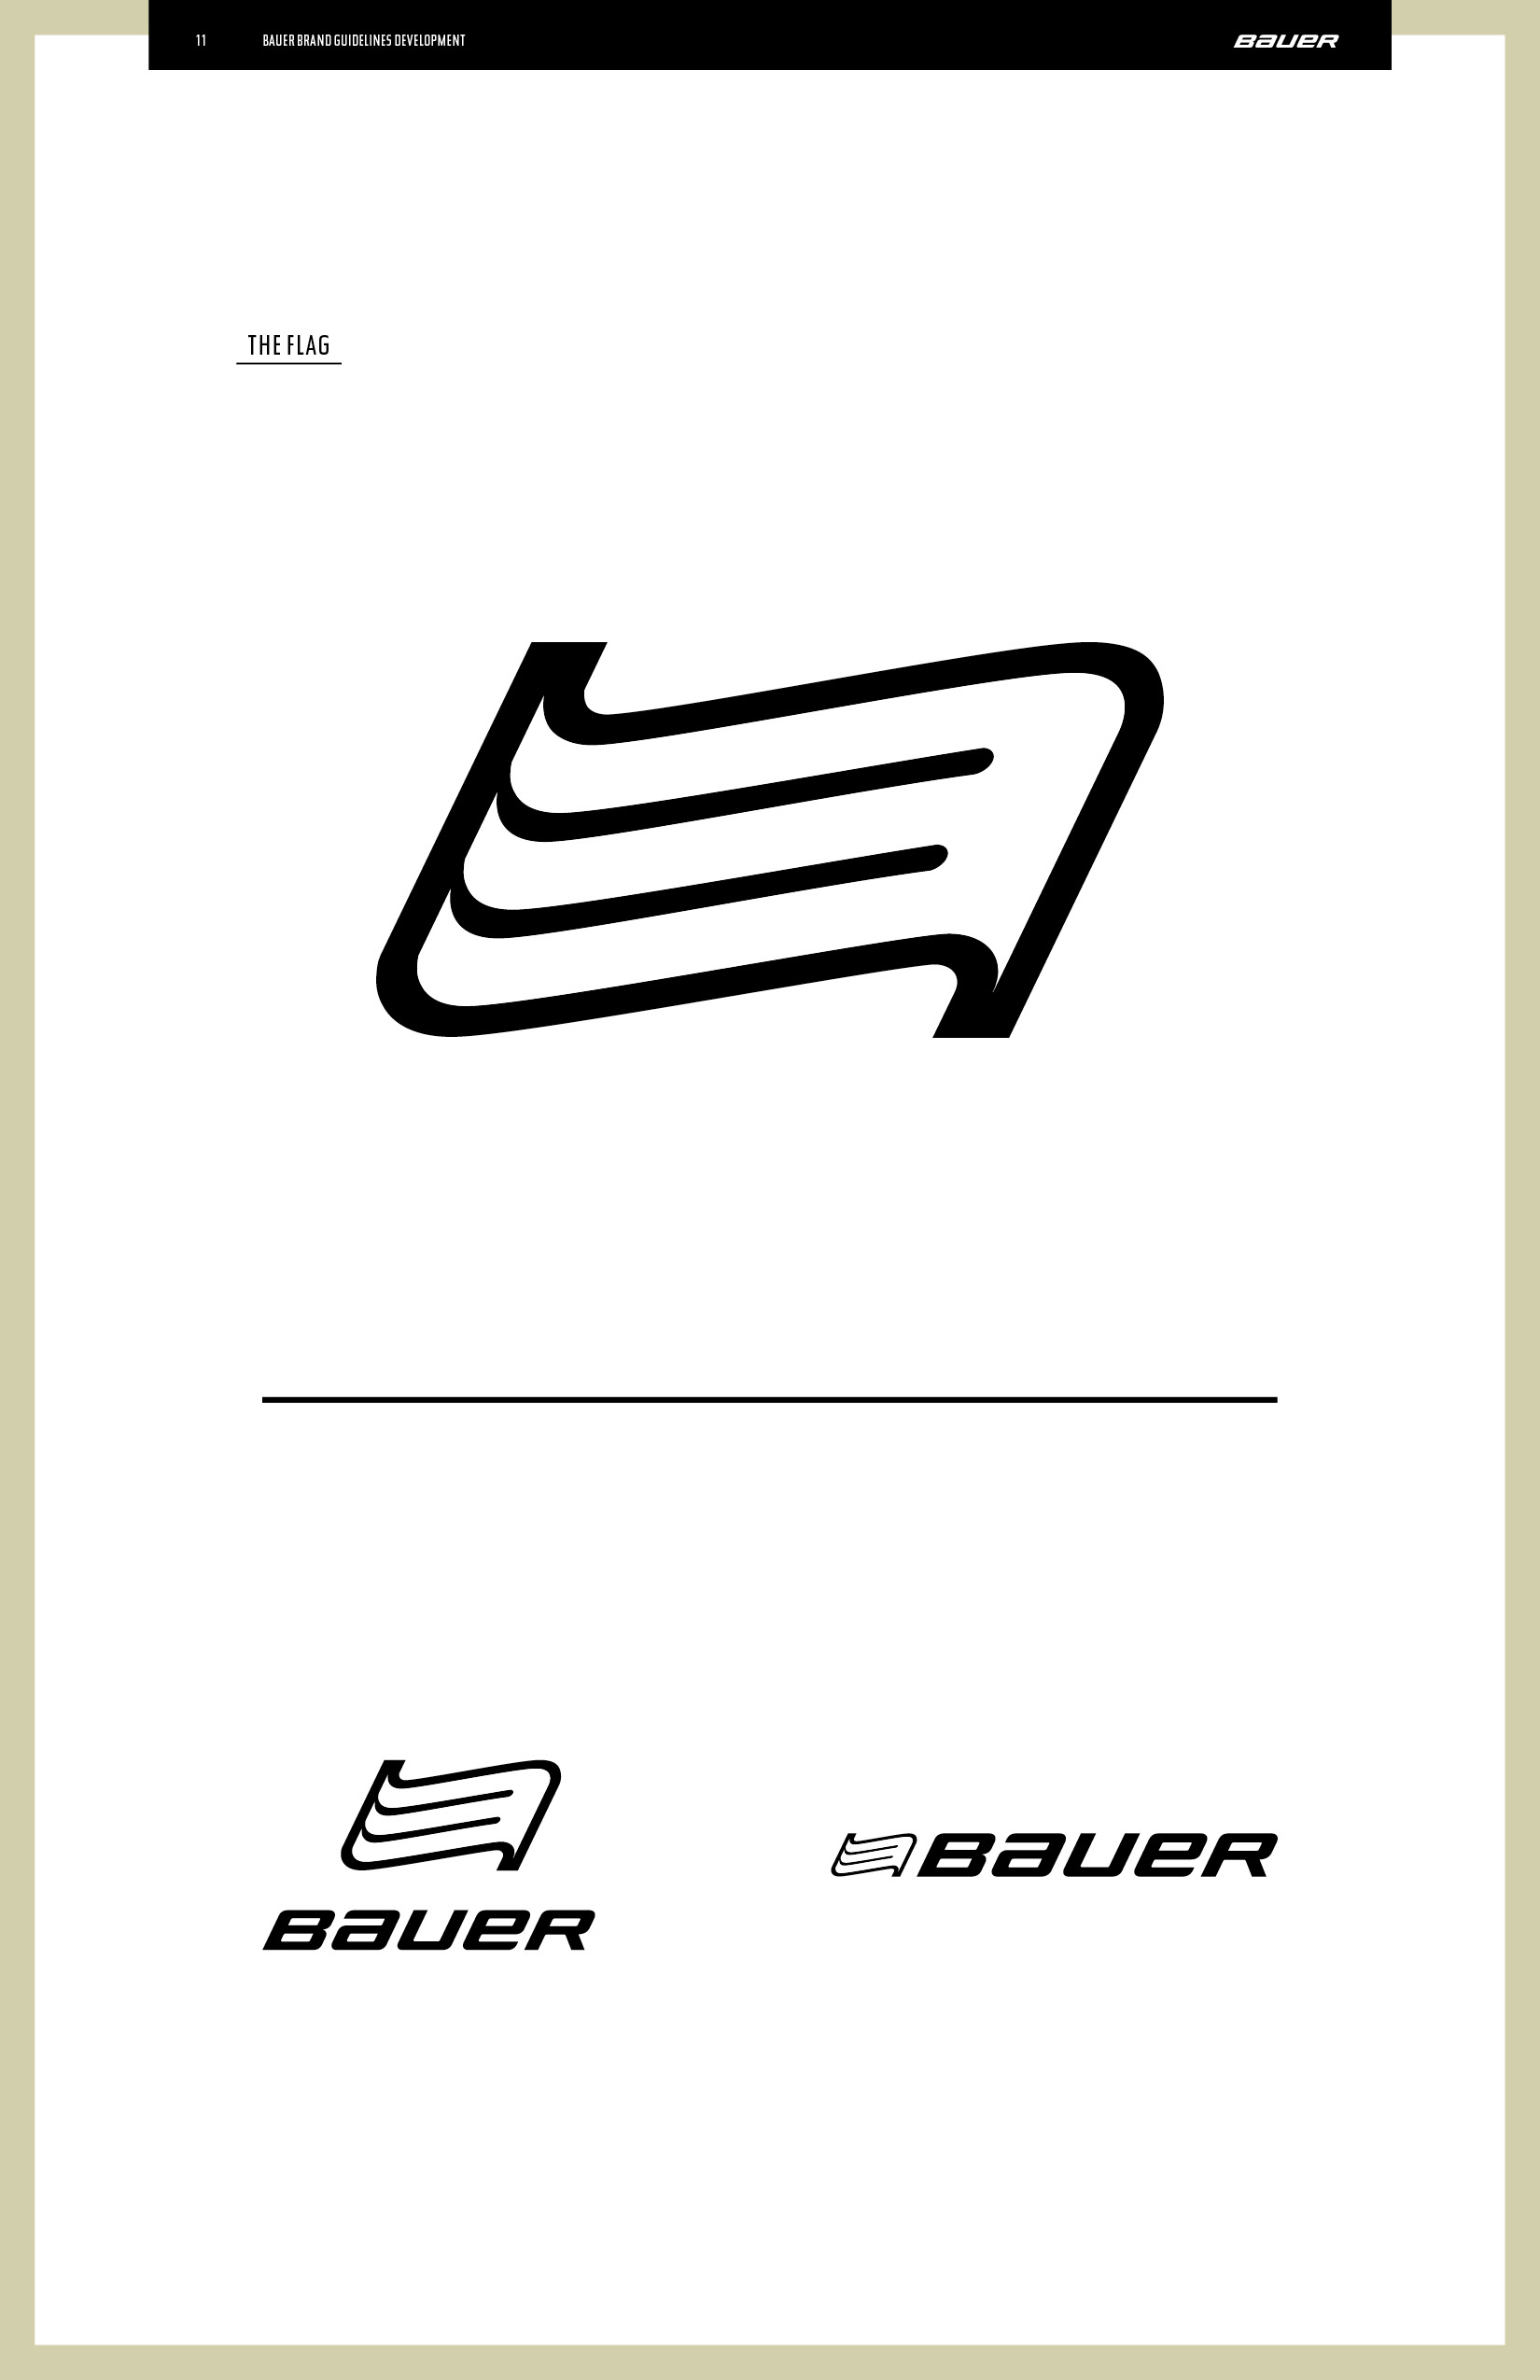 bauer_toolkit11.jpg